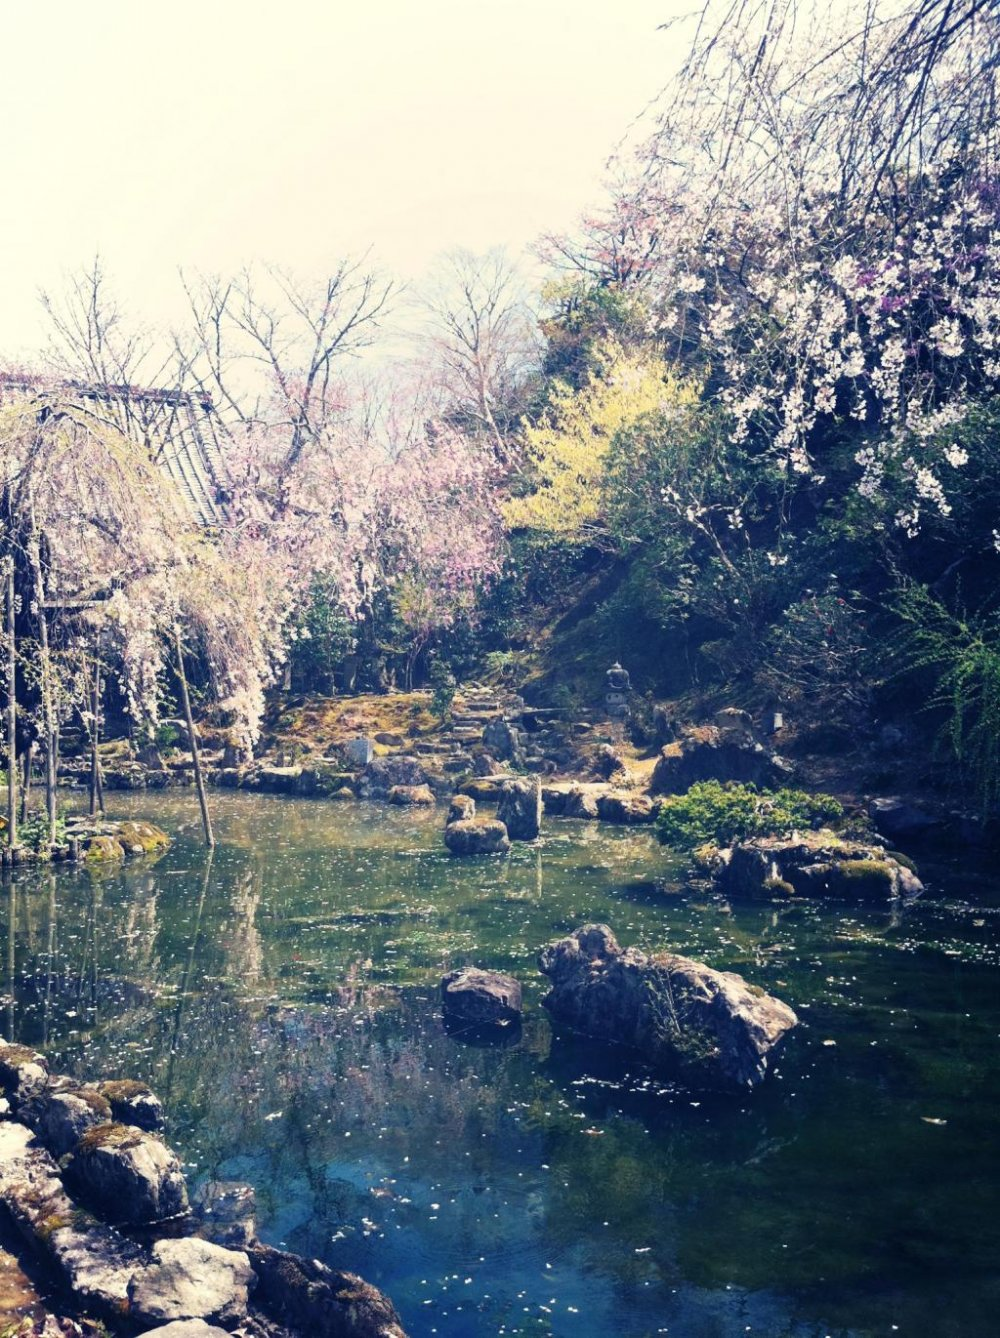 O Mount Yoshino! / I would not leave you, I feel / yet, until your flowers fall / would she wait for me?